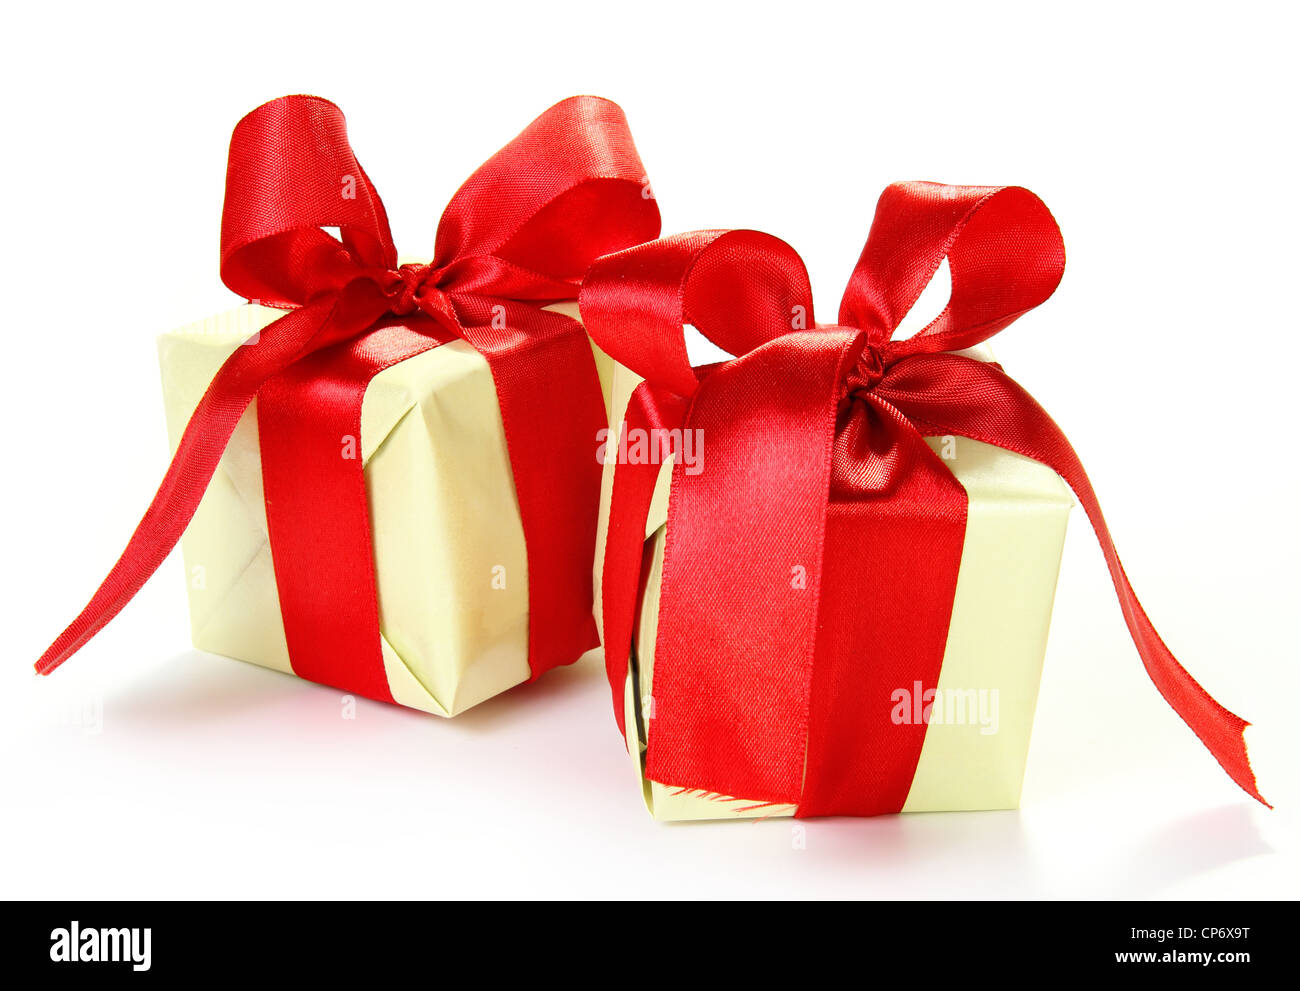 Two Nice Little Gifts with Red Bows - Stock Image